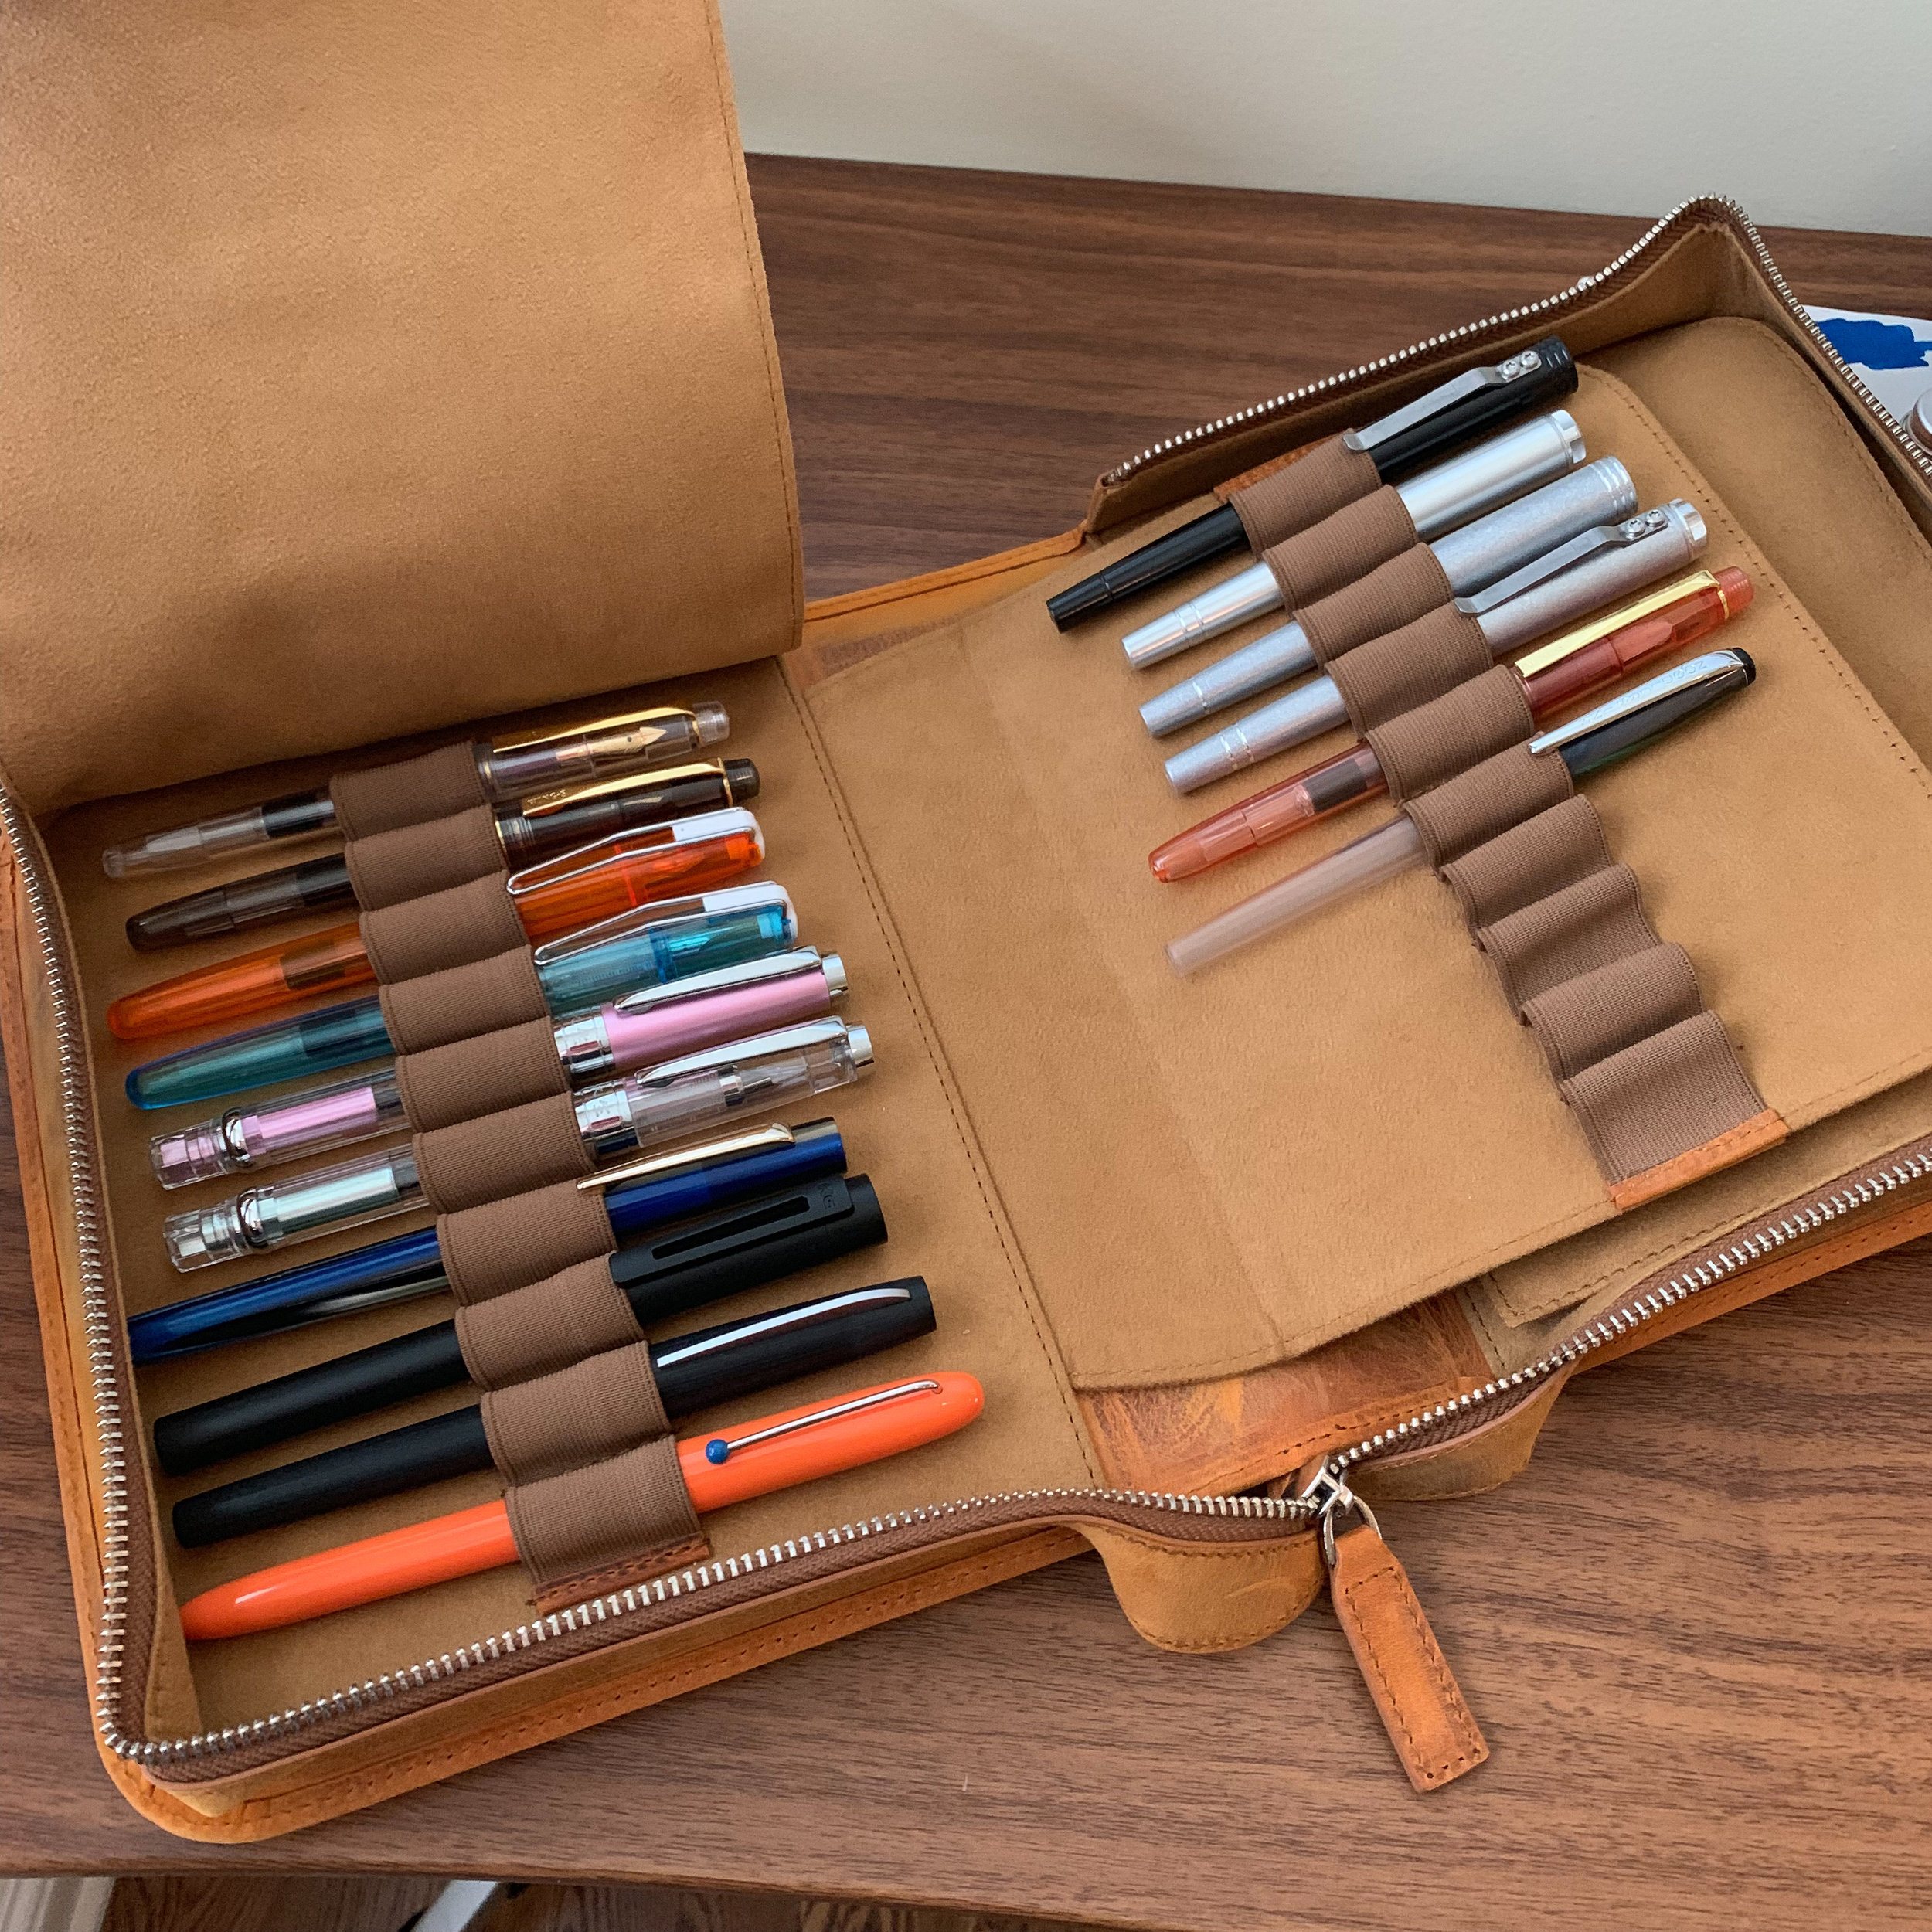 Don't miss my recent post looking at several different pen storage options, such as this 40-pen zippered case from Galen Leather!